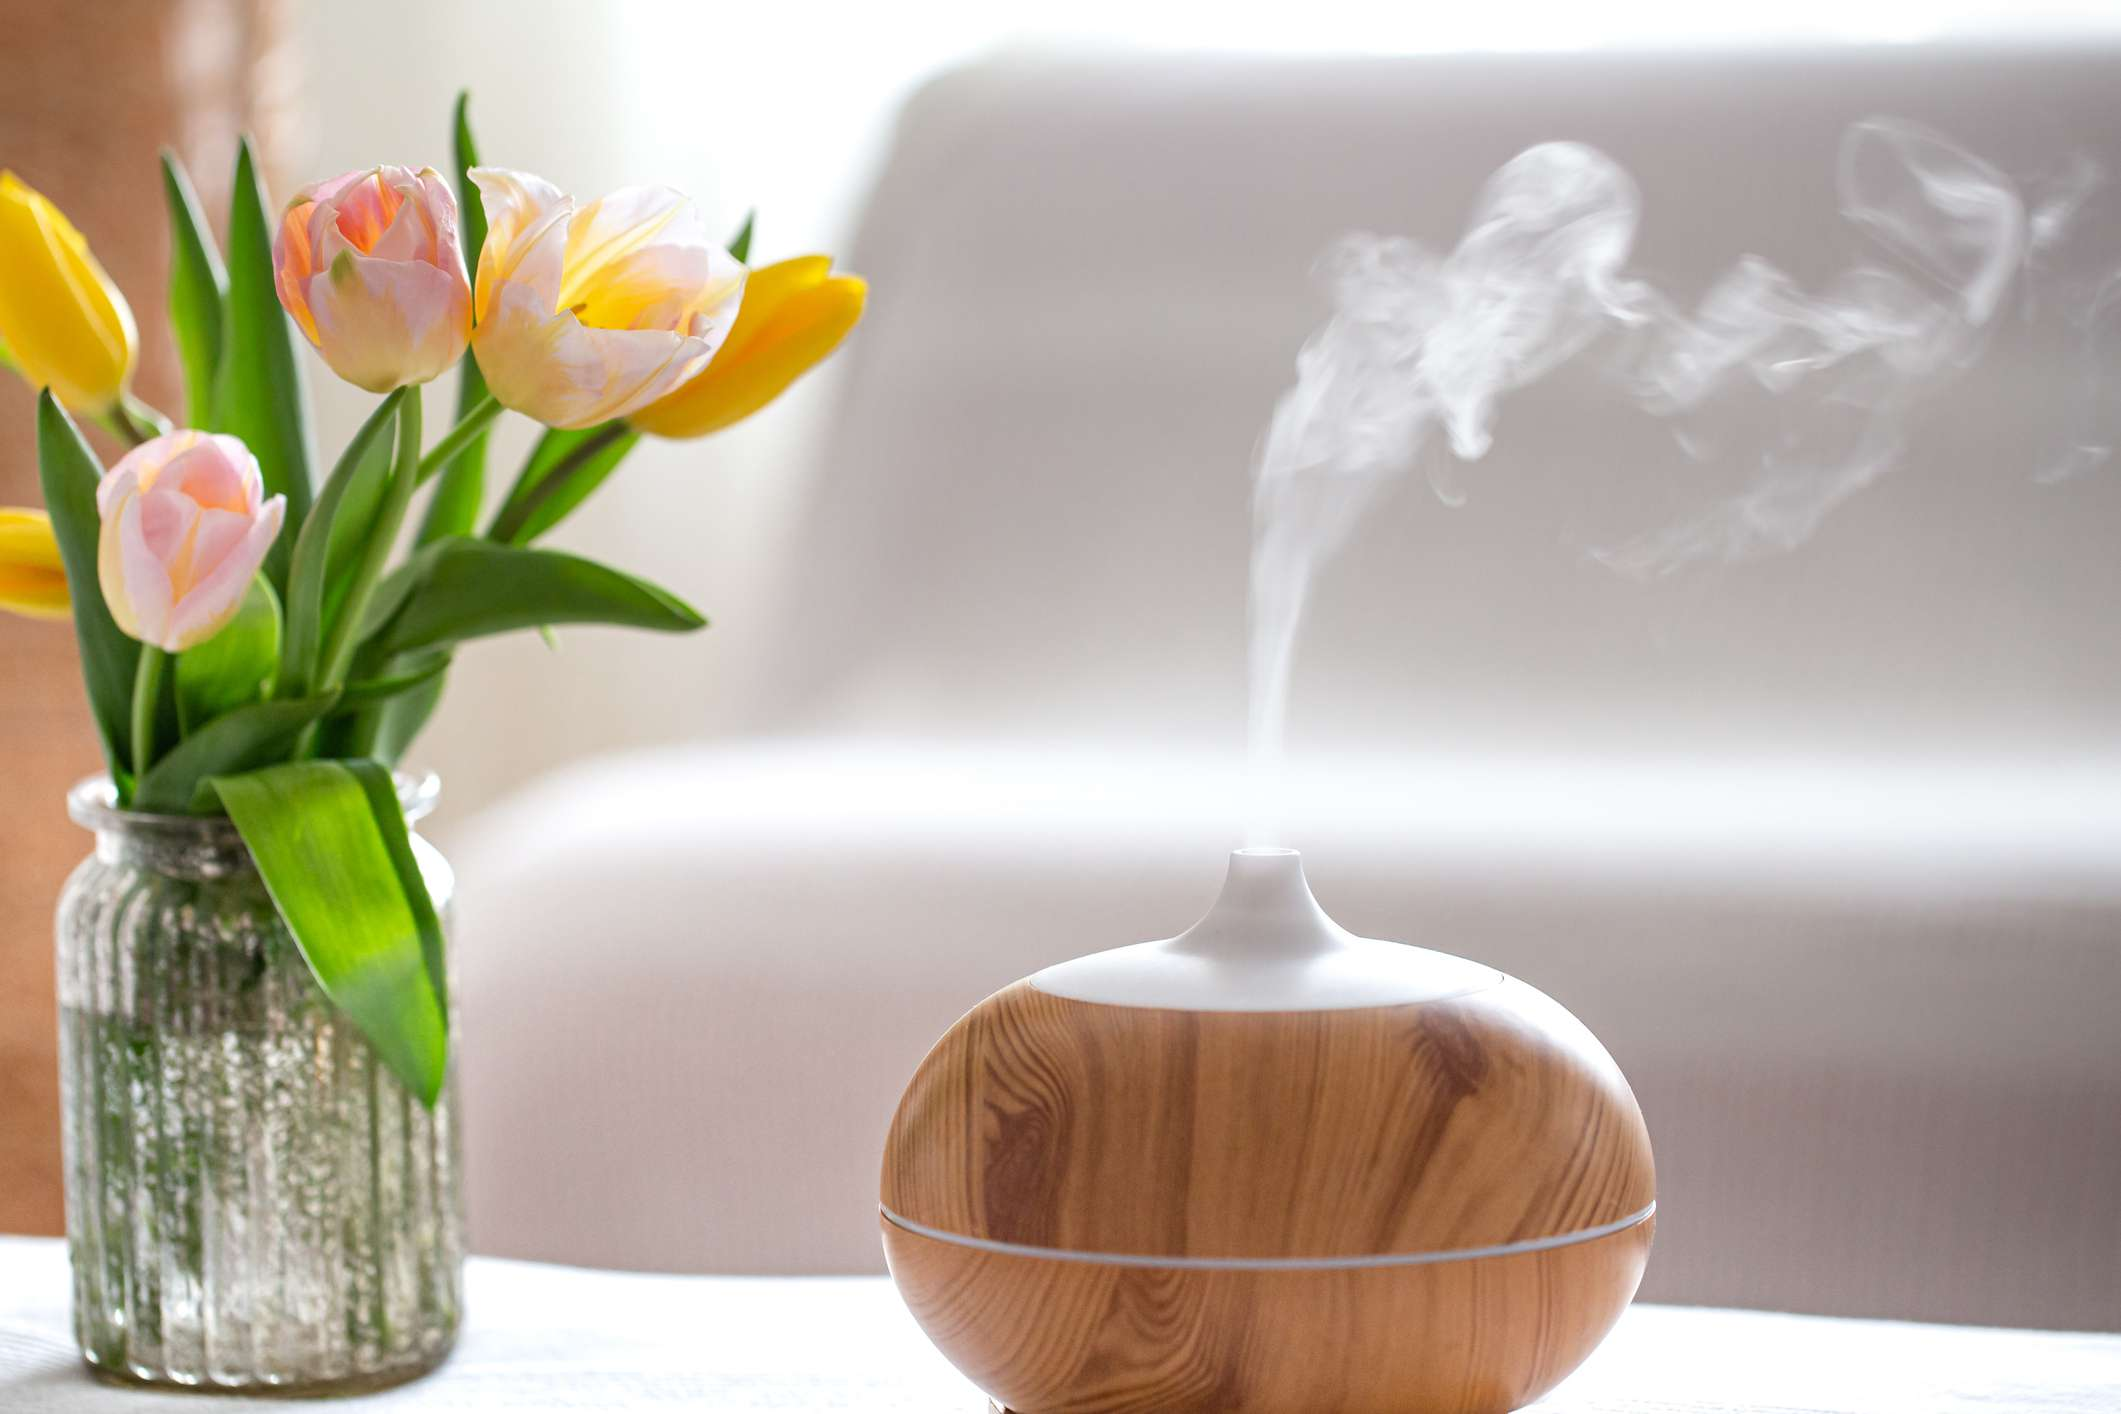 An electric diffuser on a table next to a vase filled with fresh flowers.